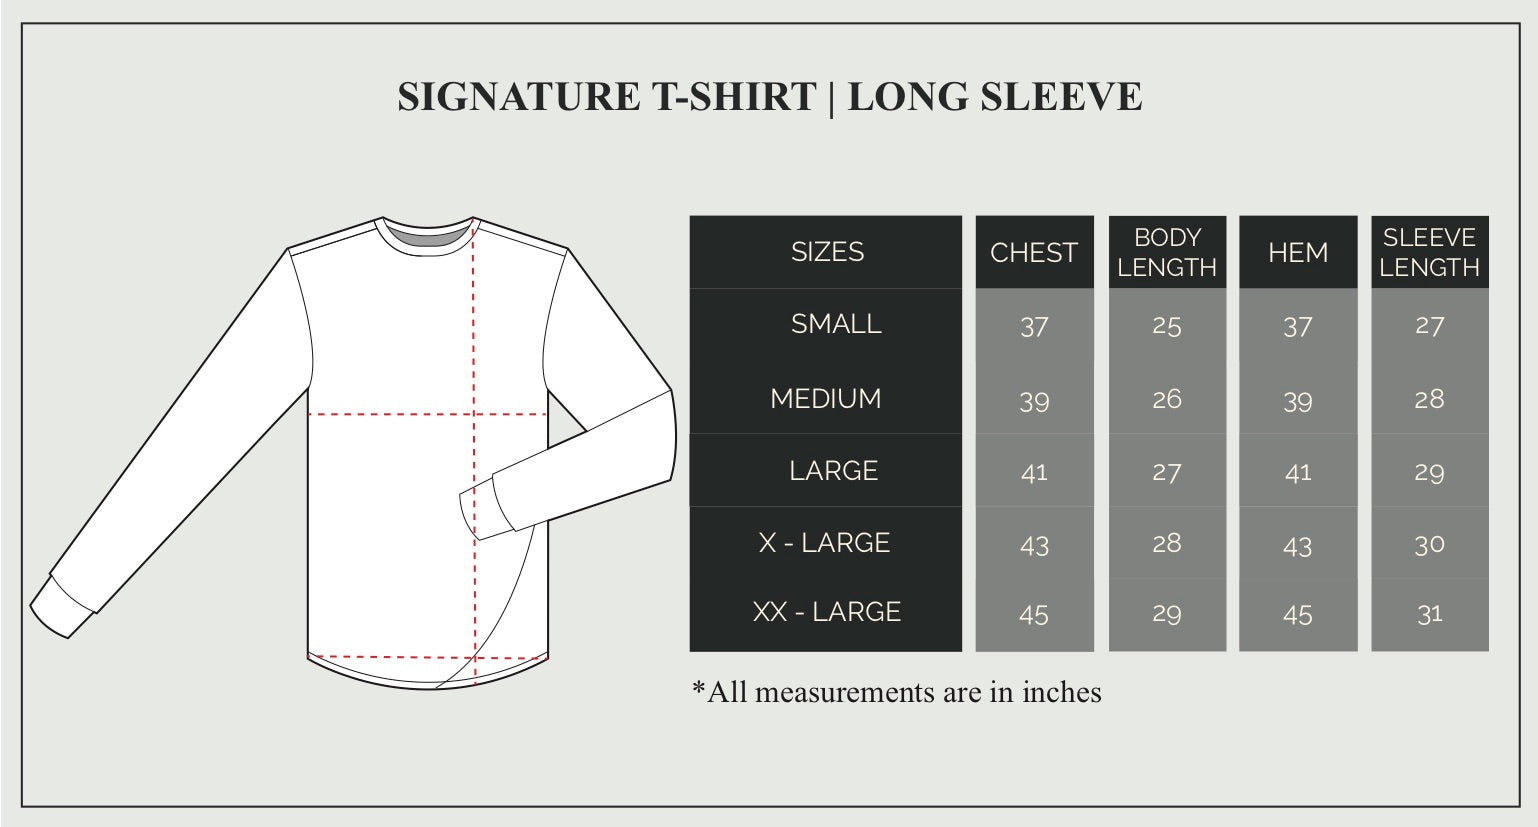 Long Sleeve T-Shirt Size Guide